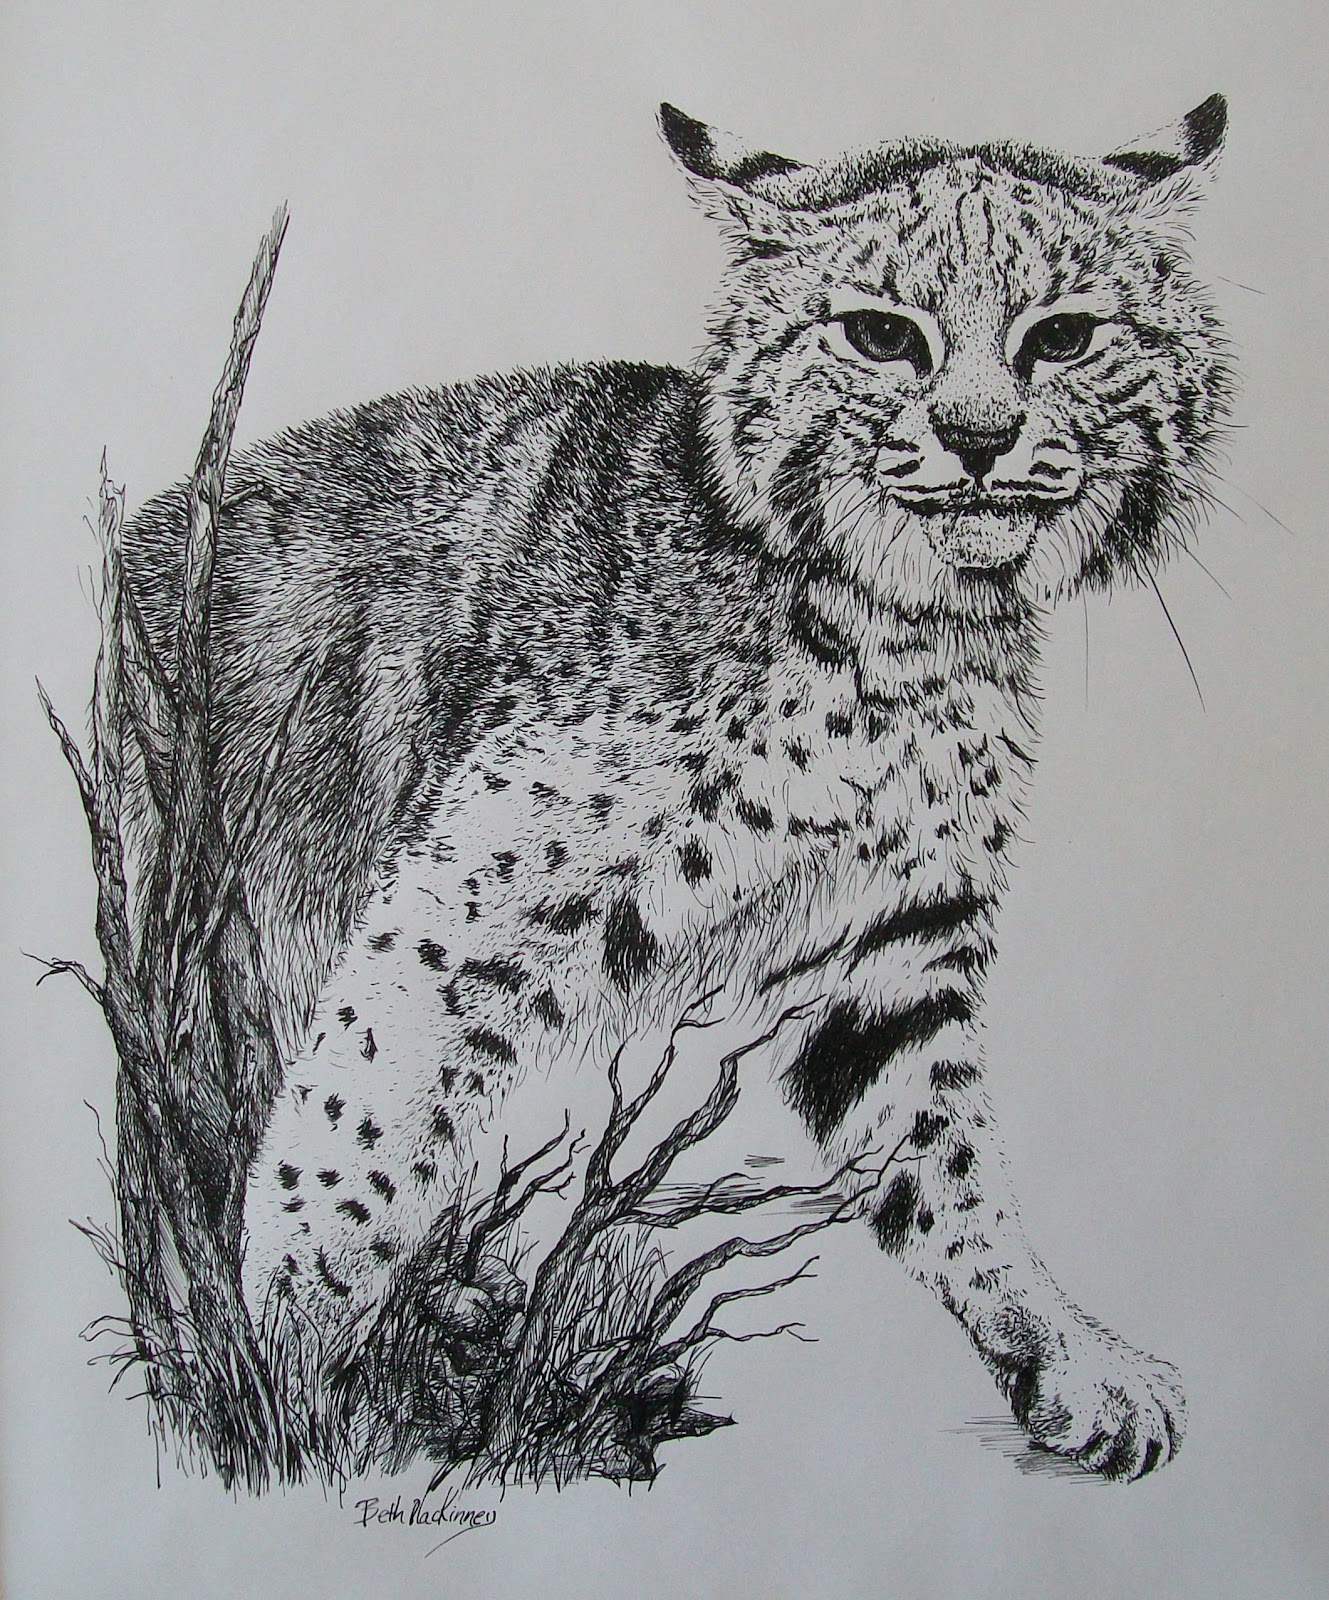 Pen And Ink Illustrations : Pen and ink artists bing images